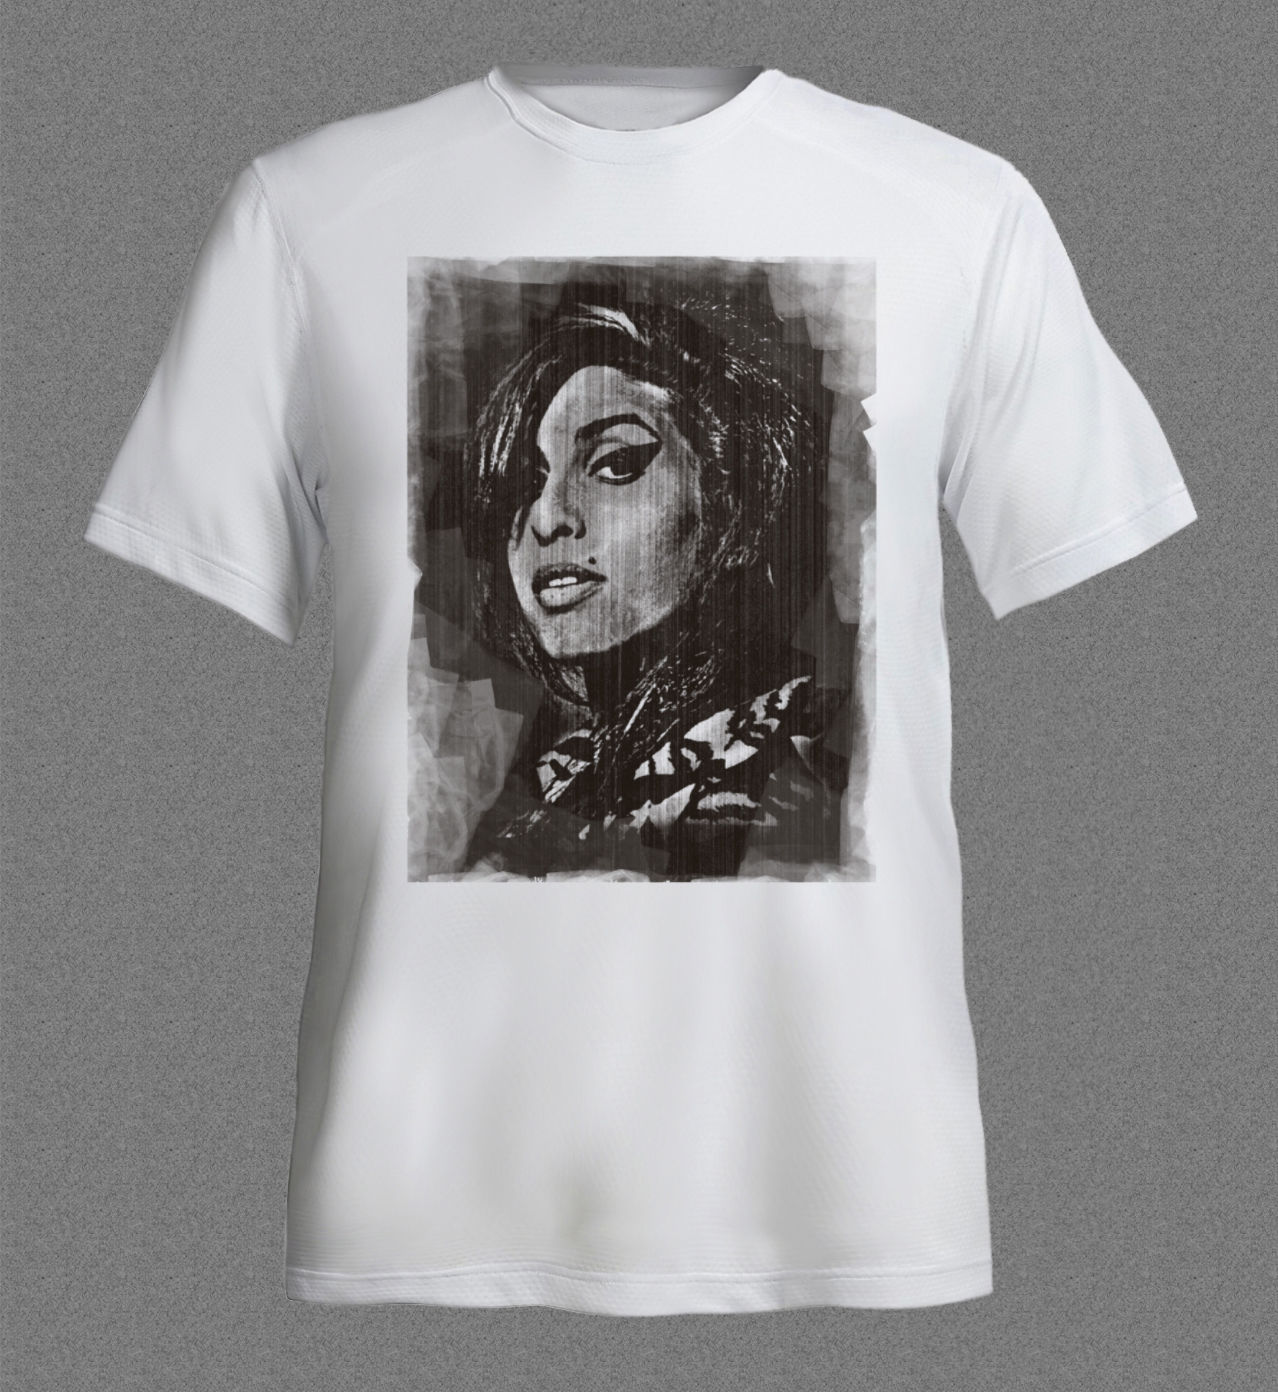 AMY WINEHOUSE POP SOUL JAZZ R & B Music T-shirt